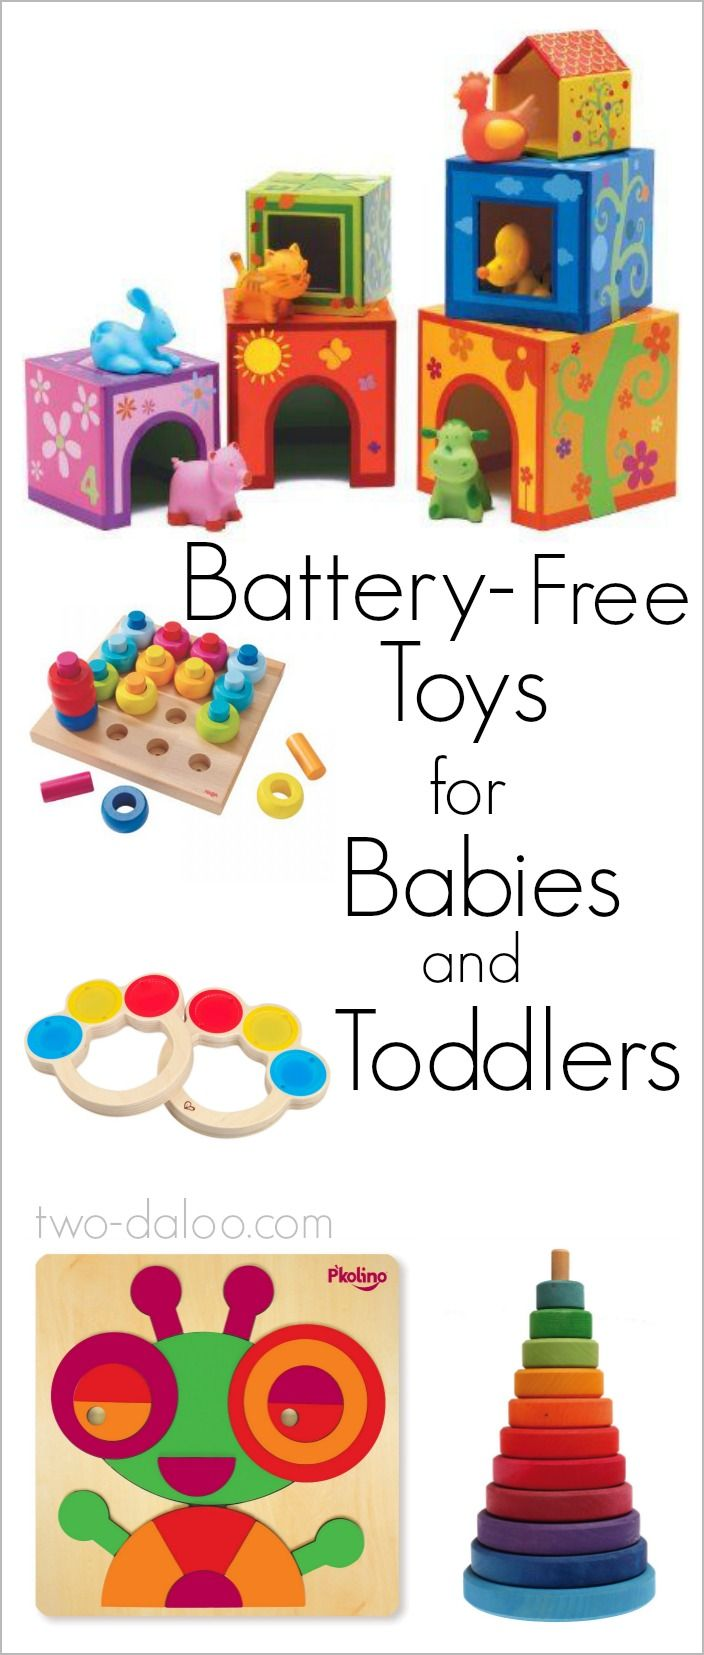 Last updated Monday, January 6, 2014  You asked, we answered! Here are our popular guides with recommendations for quality, developmentally stimulating toys for your little ones. Have an idea for a gift guide you'd like to see? Leave a comment on the page!